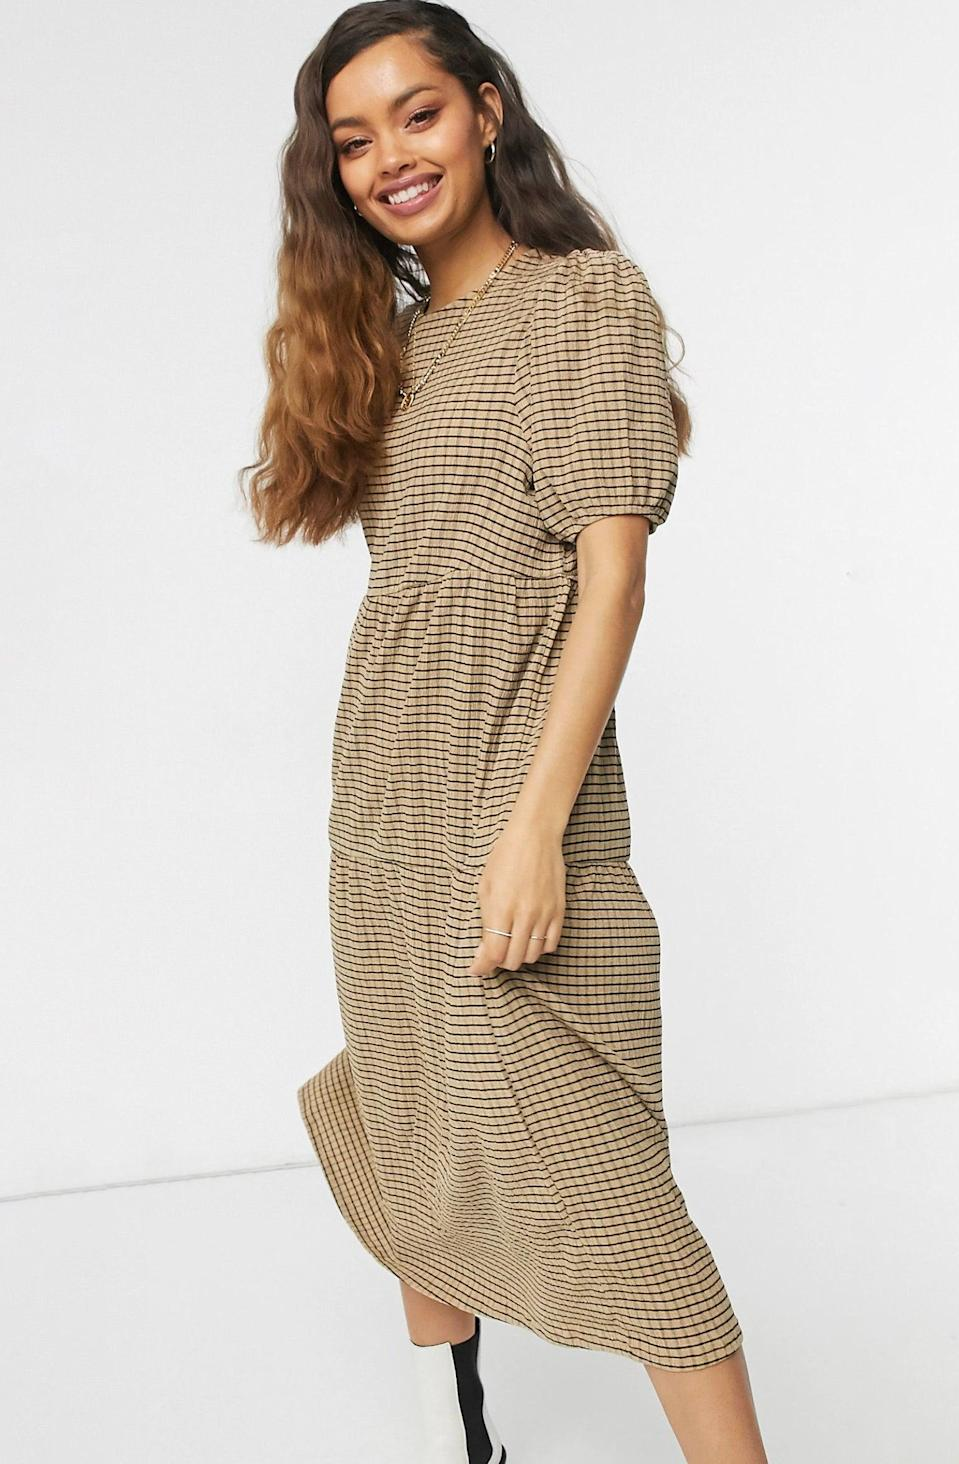 "<br><br><strong>ASOS DESIGN</strong> Petite Midi Tiered Smock Dress, $, available at <a href=""https://www.asos.com/asos-petite/asos-design-petite-midi-tiered-smock-in-camel-and-black-check/prd/21652371"" rel=""nofollow noopener"" target=""_blank"" data-ylk=""slk:ASOS"" class=""link rapid-noclick-resp"">ASOS</a>"